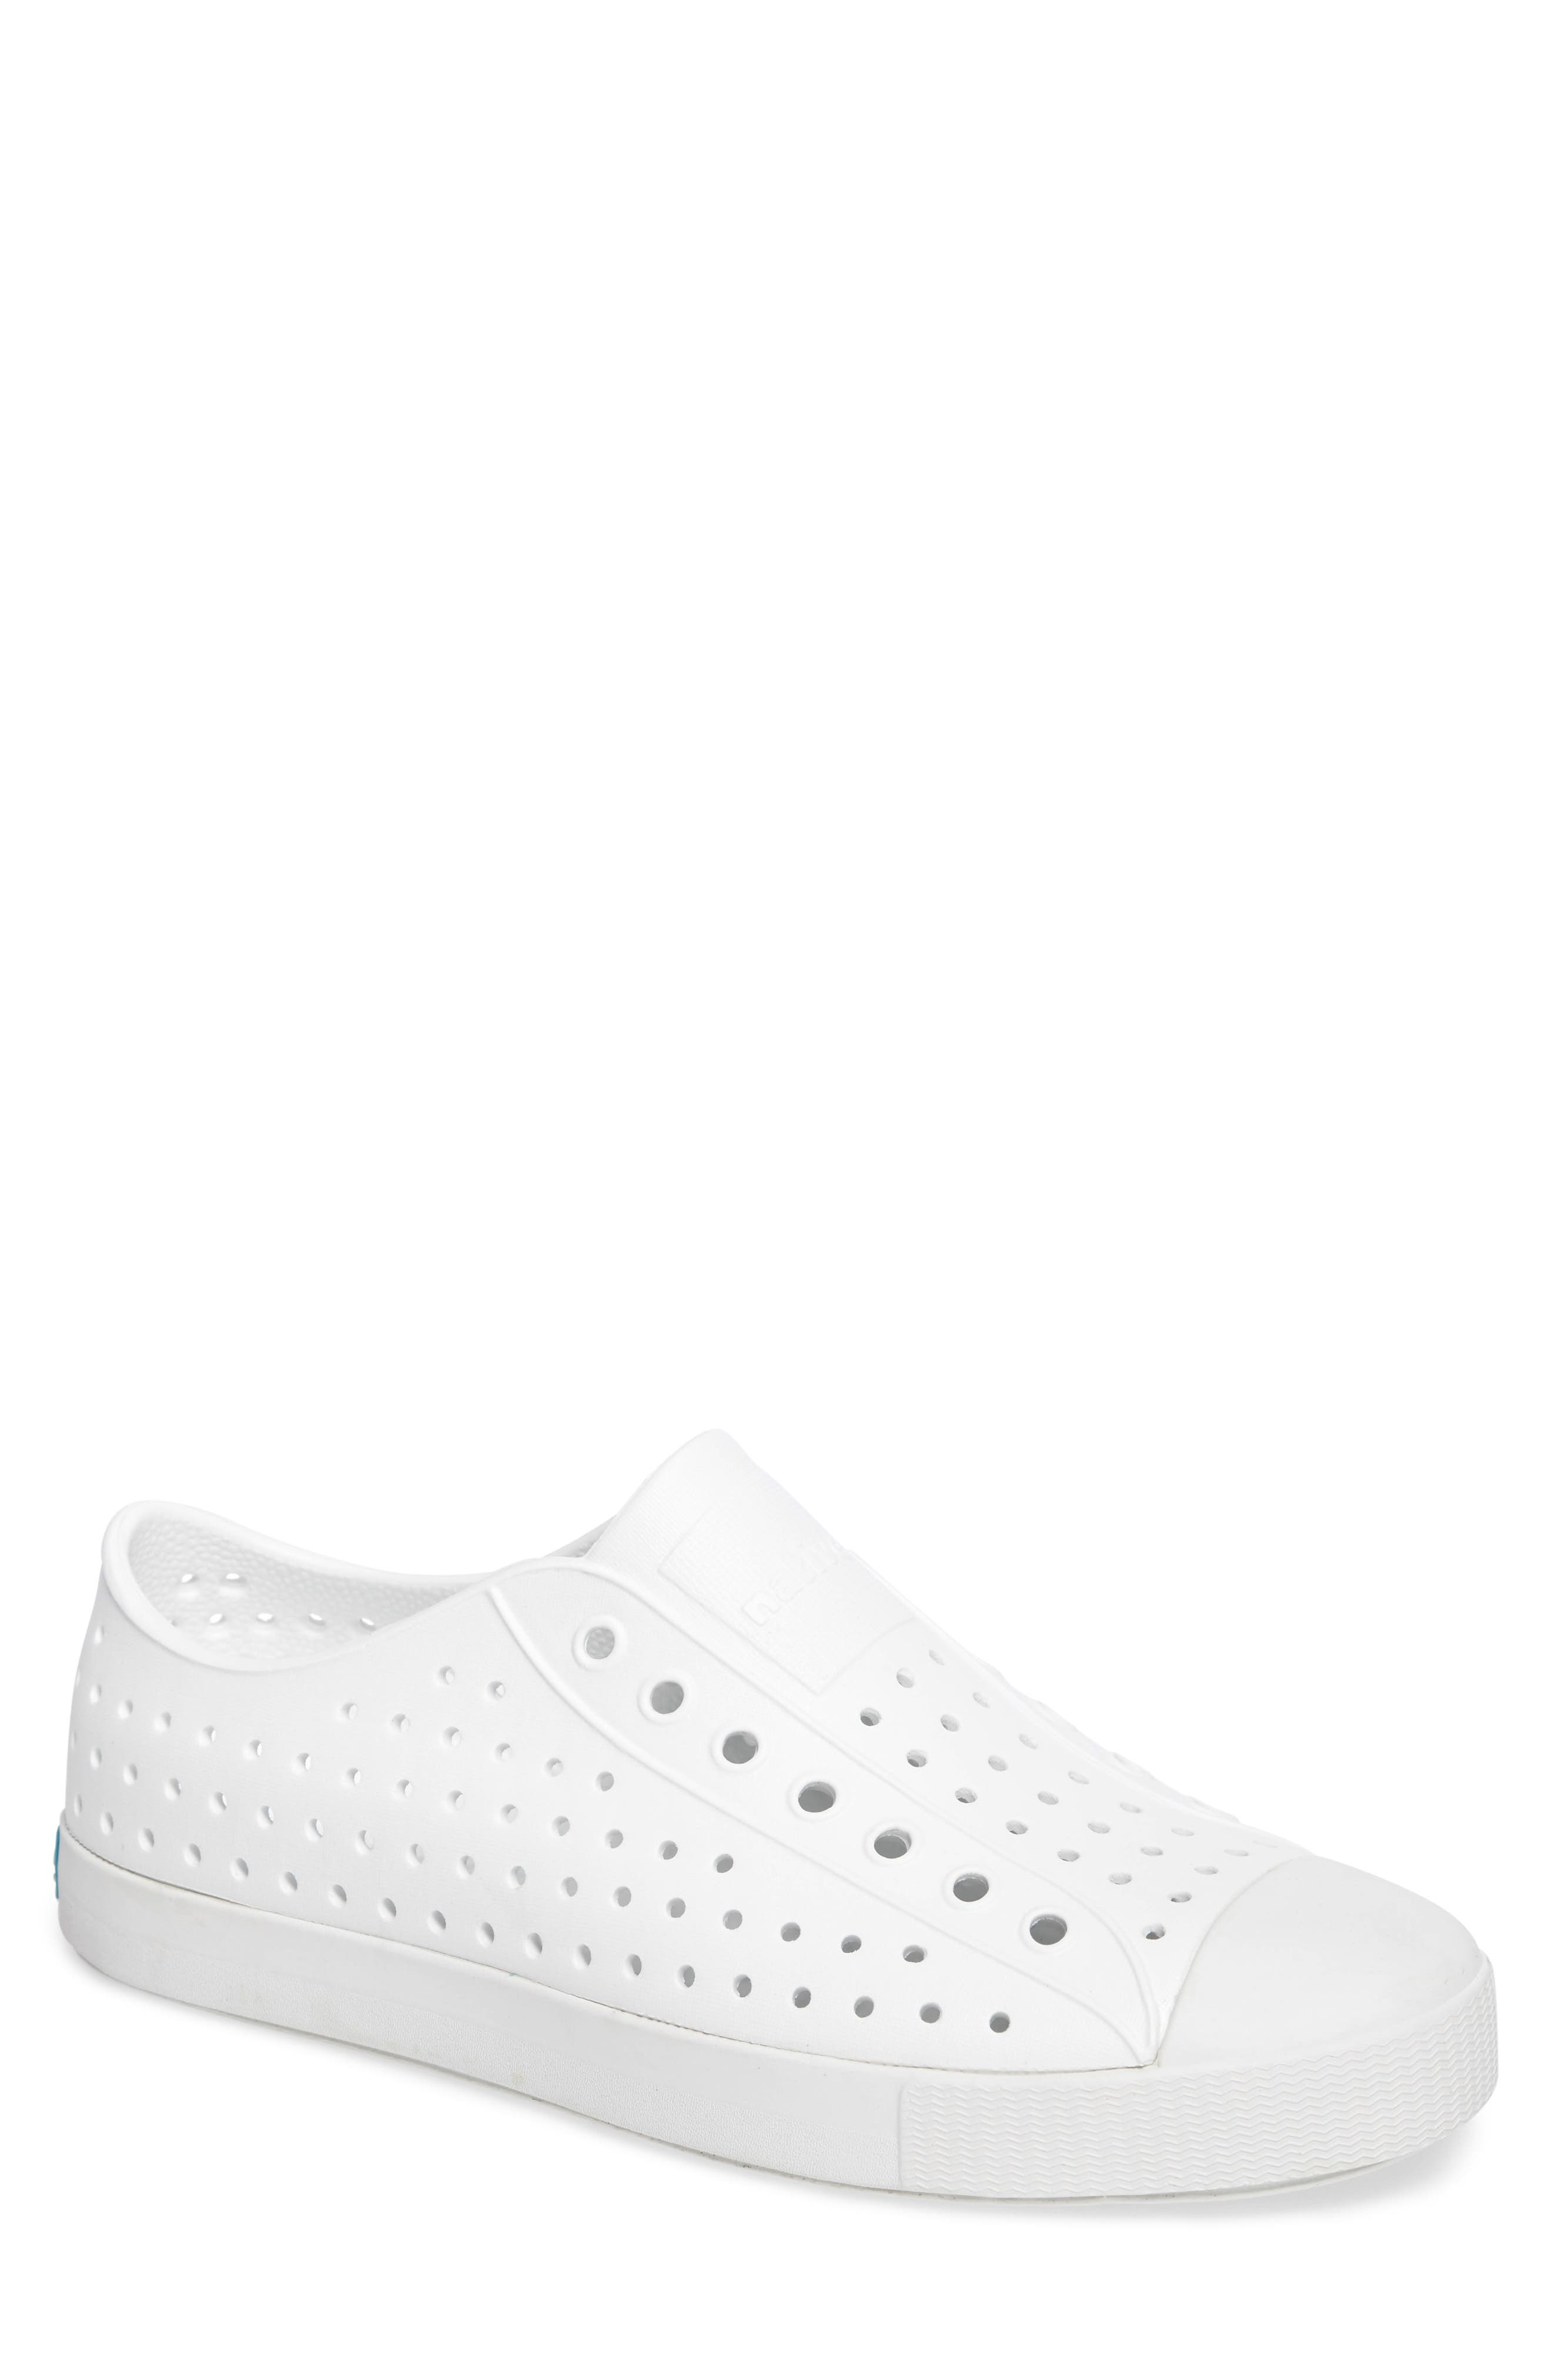 'Jefferson' Slip-On,                         Main,                         color, SHELL WHITE SOLID